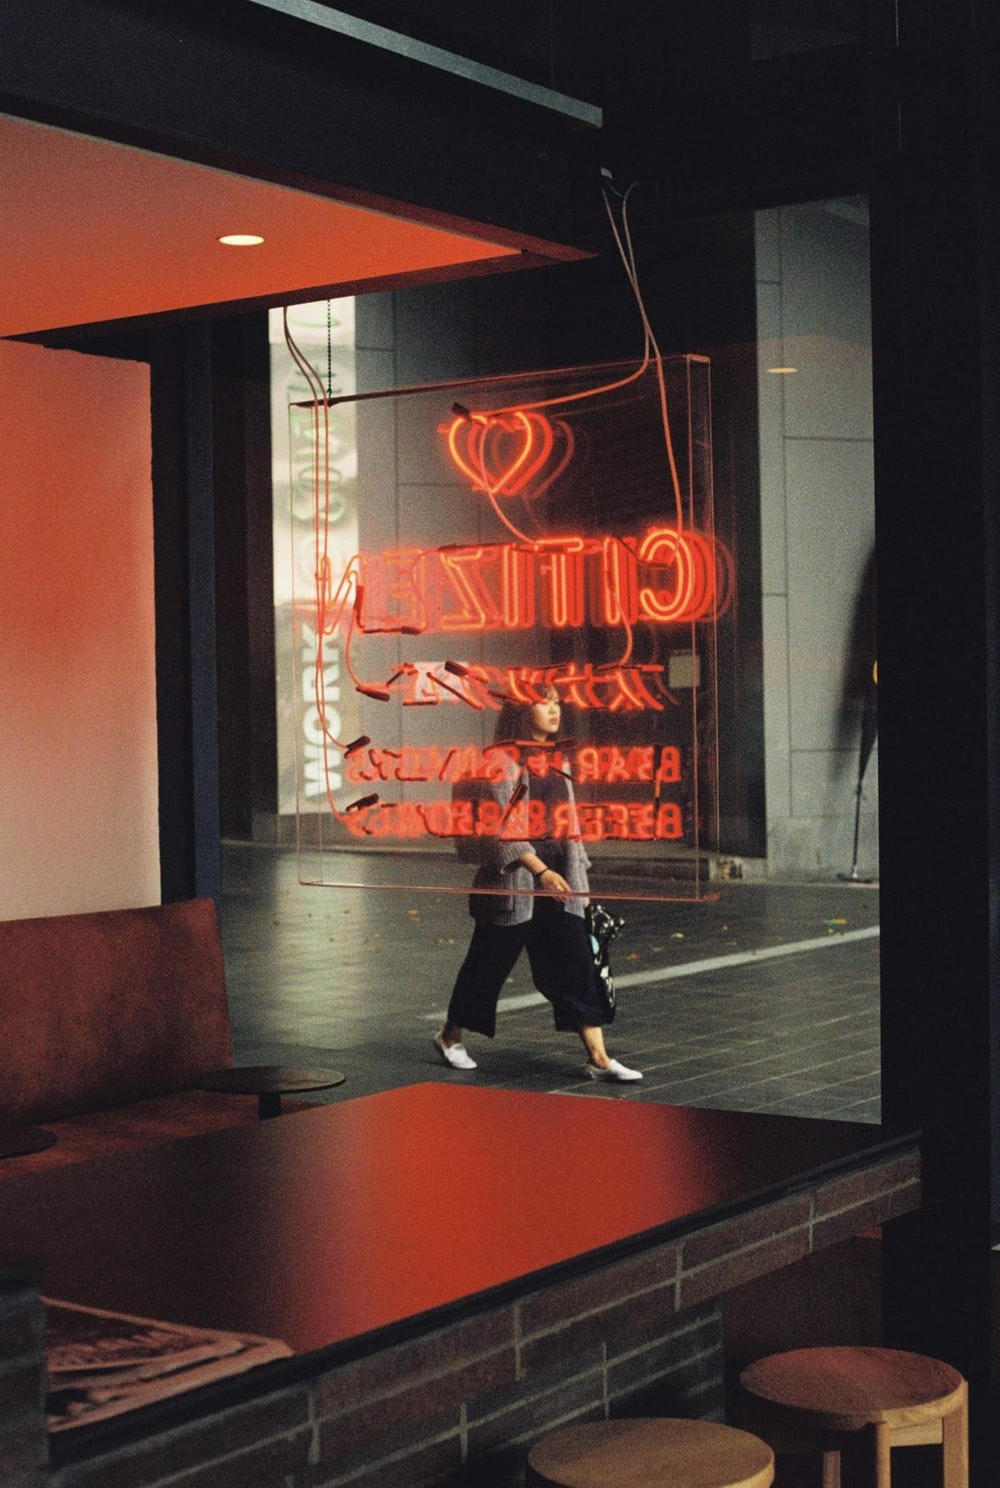 man in black jacket and black pants standing near red and white neon sign